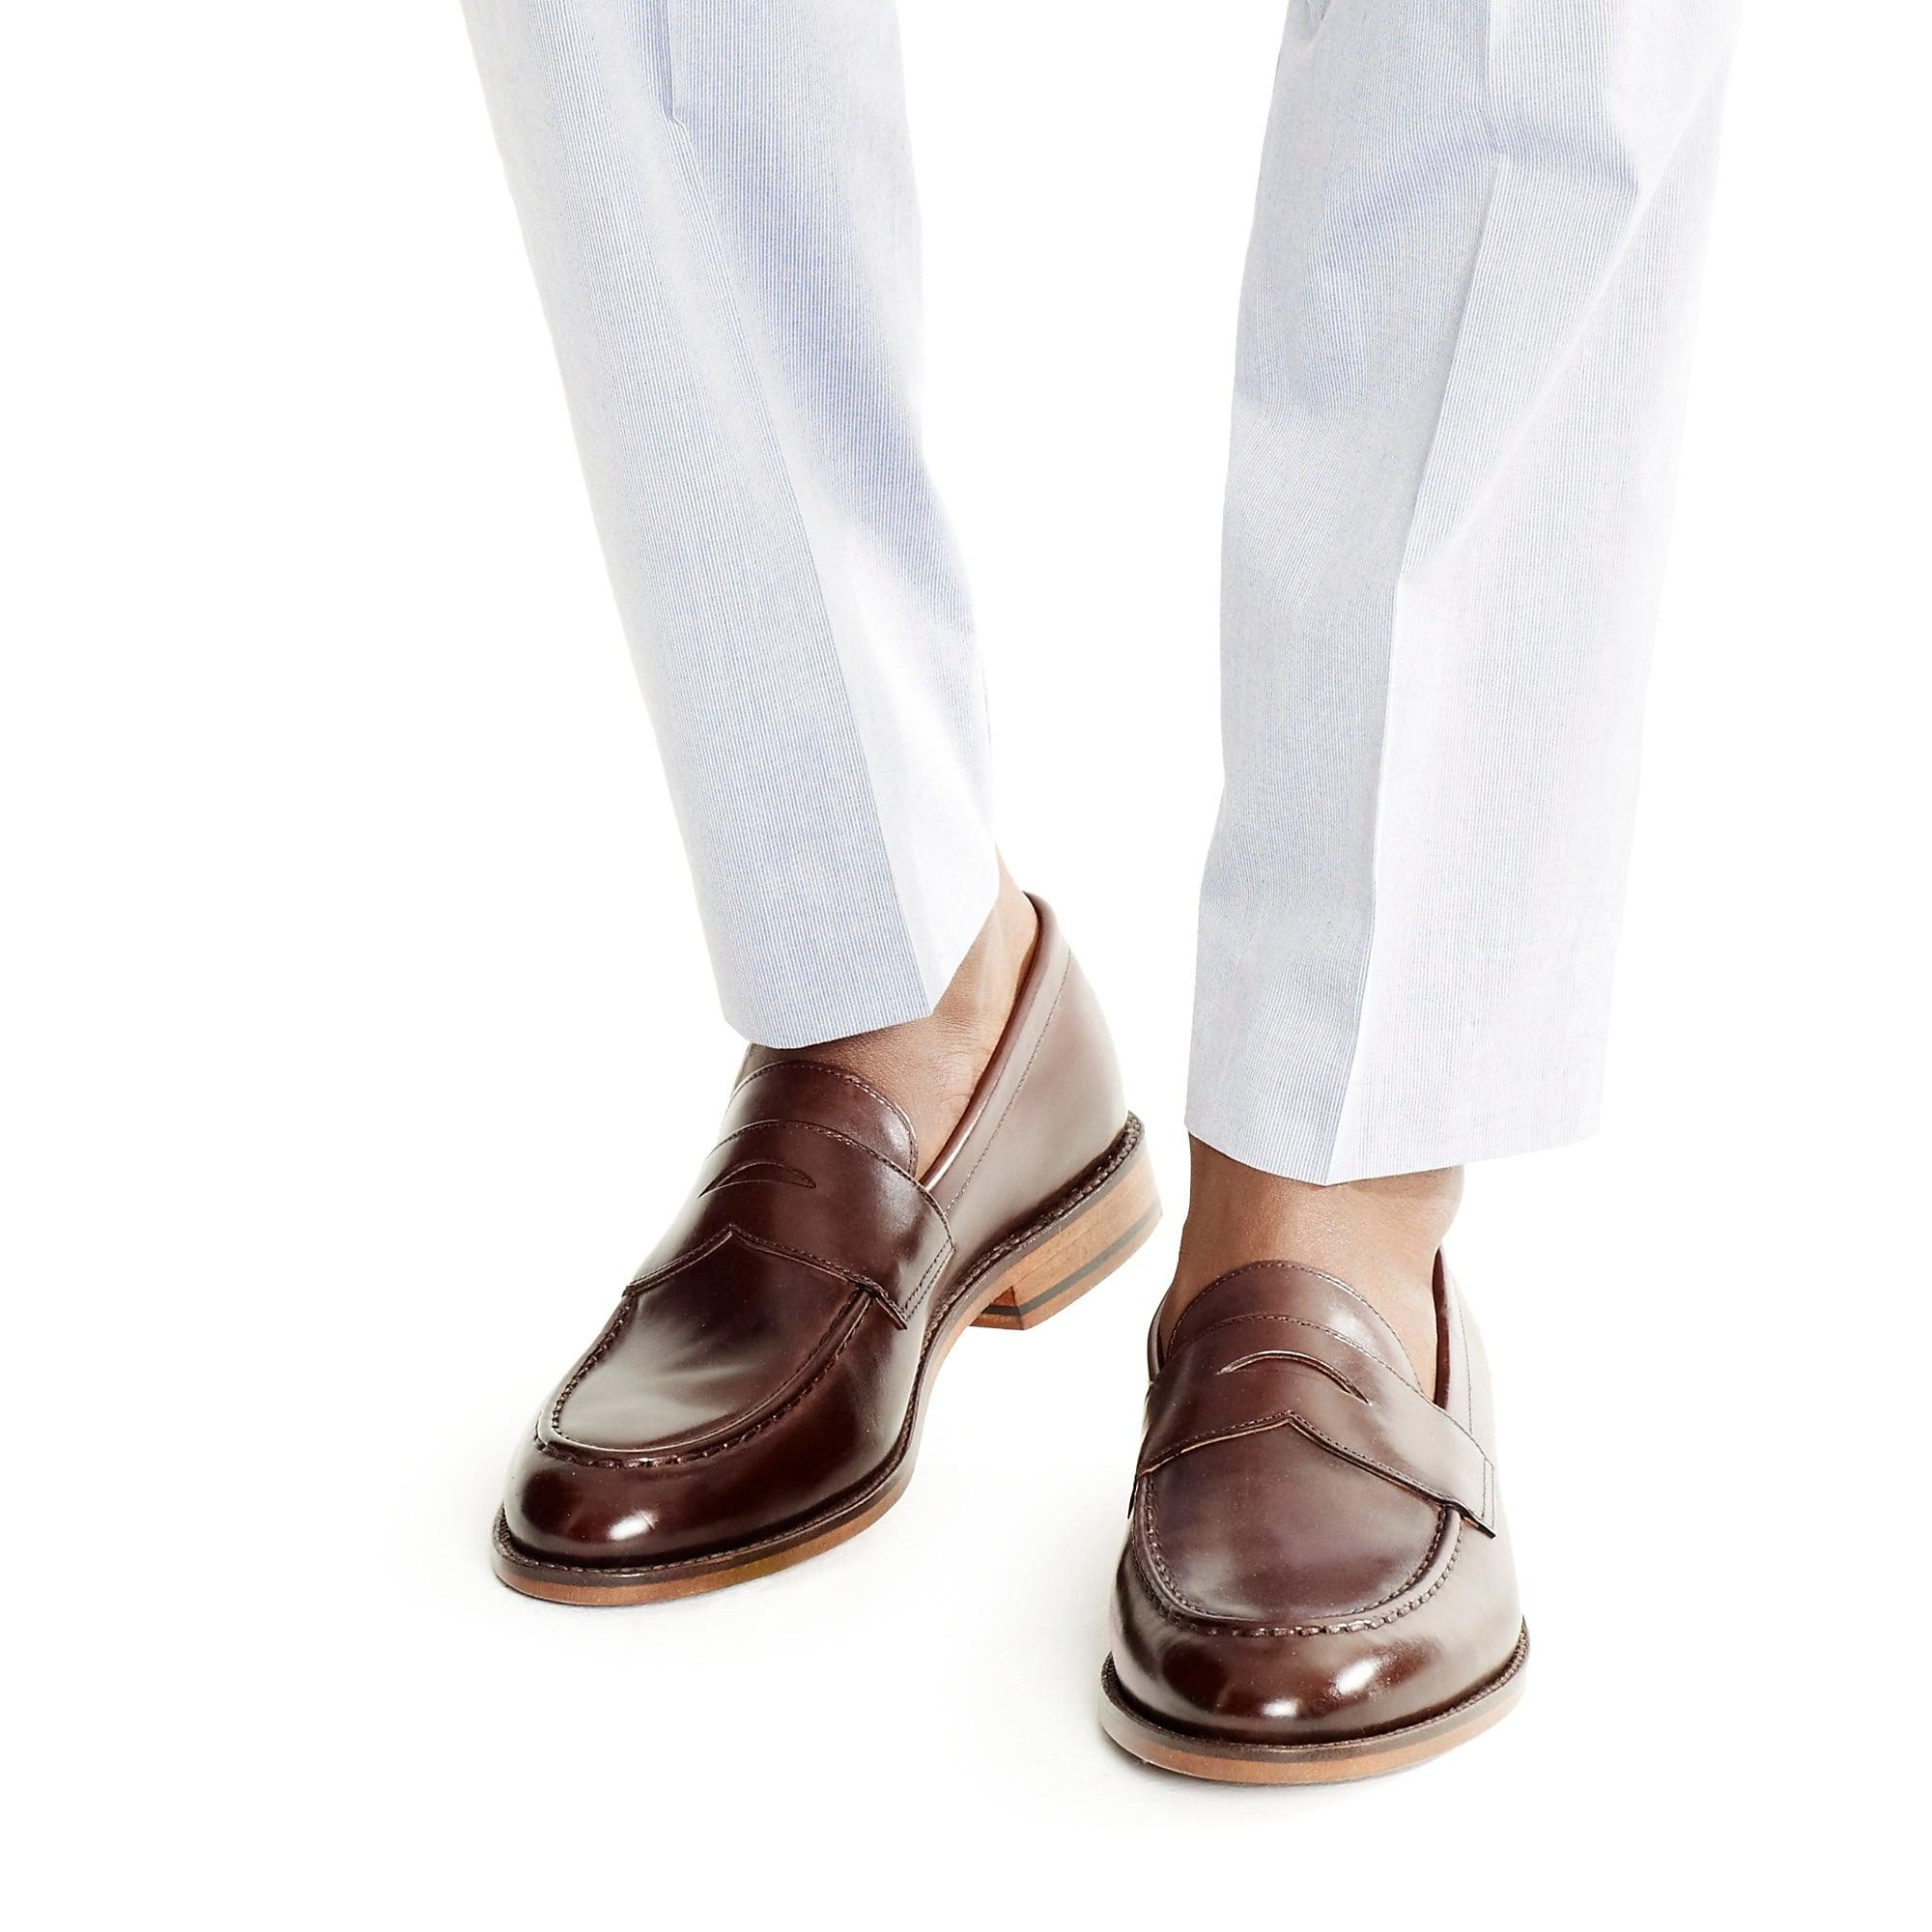 6f22a581089 ... Ludlow Penny Loafers for Men - Lyst. View fullscreen